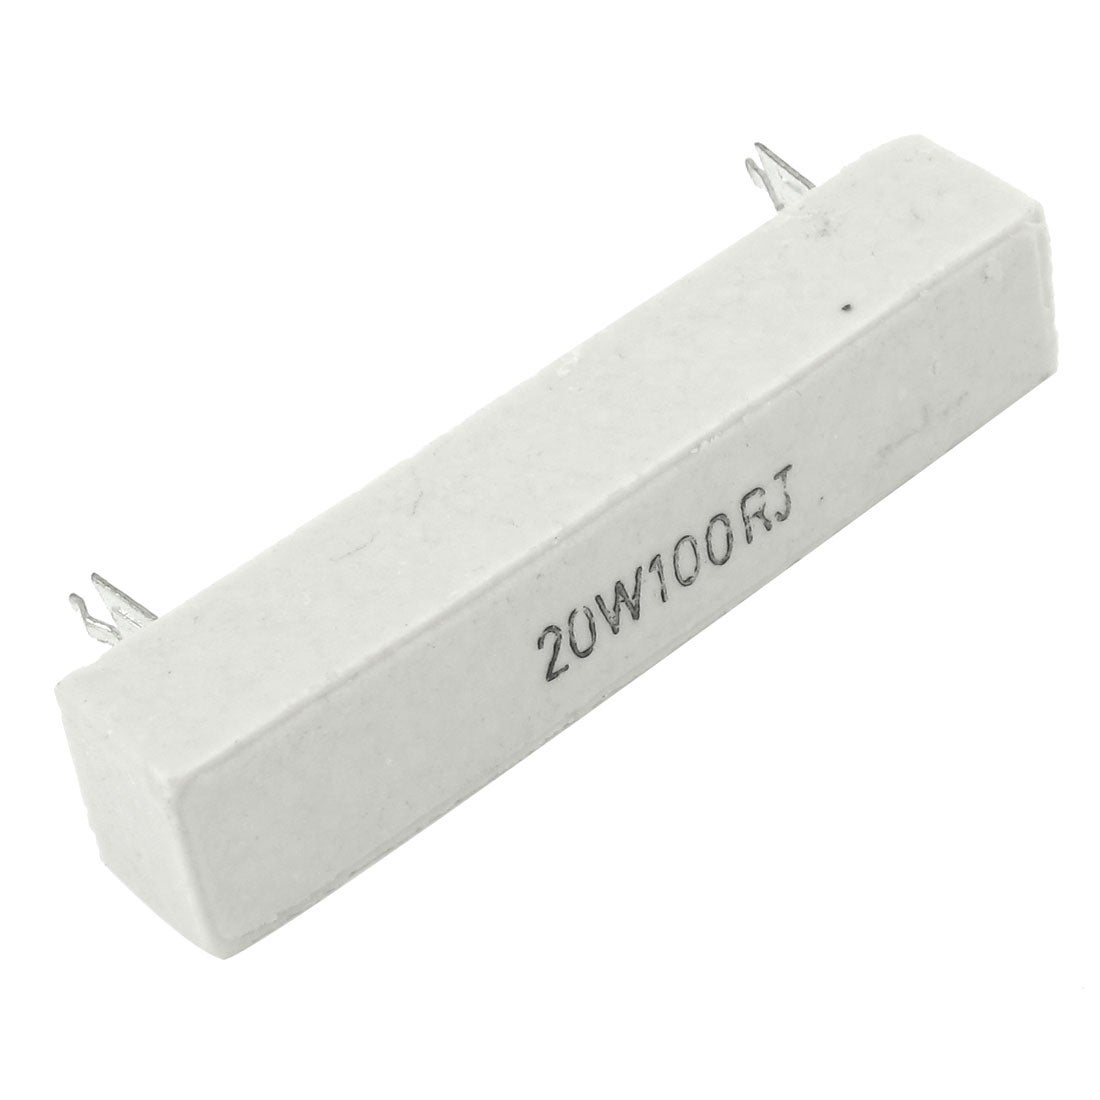 US Stock 2pcs 0.25 ohm 0R25ΩJ 20 watt Axial Ceramic Cement Power Resistor 20W